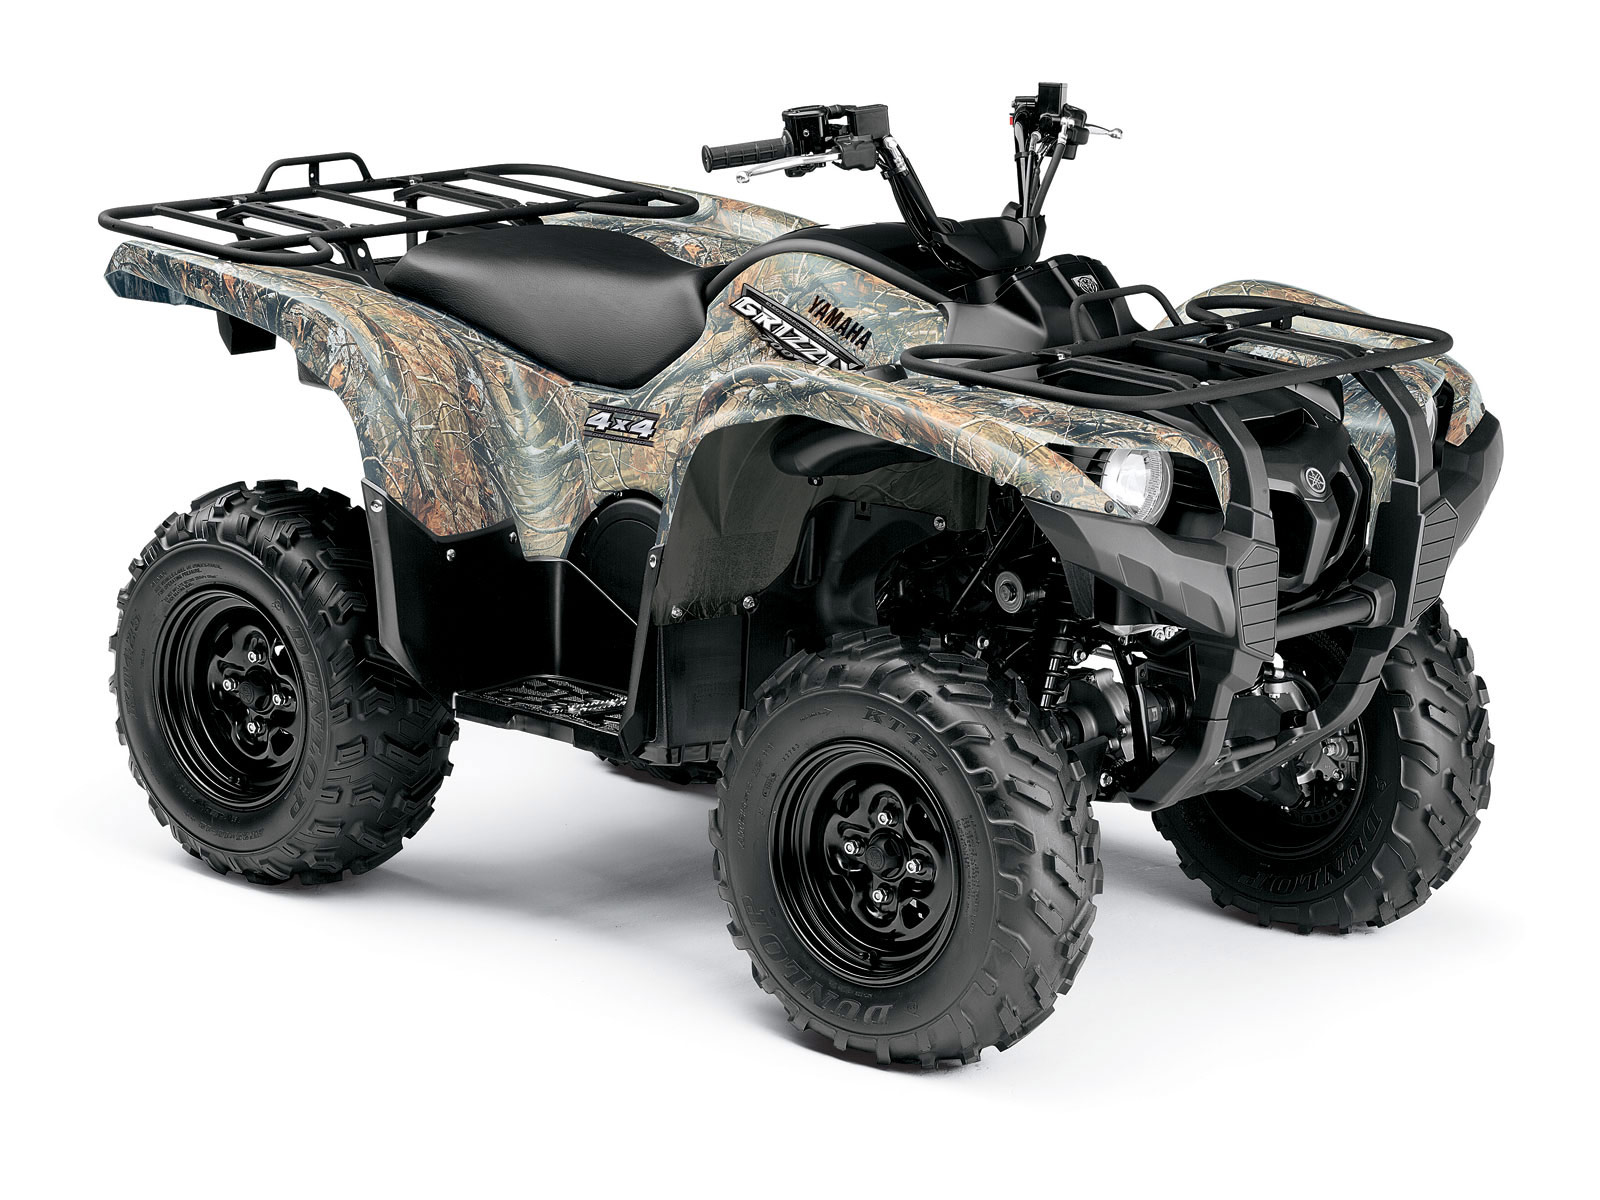 2009 yamaha grizzly 700 fi eps ducks unlimited. Black Bedroom Furniture Sets. Home Design Ideas